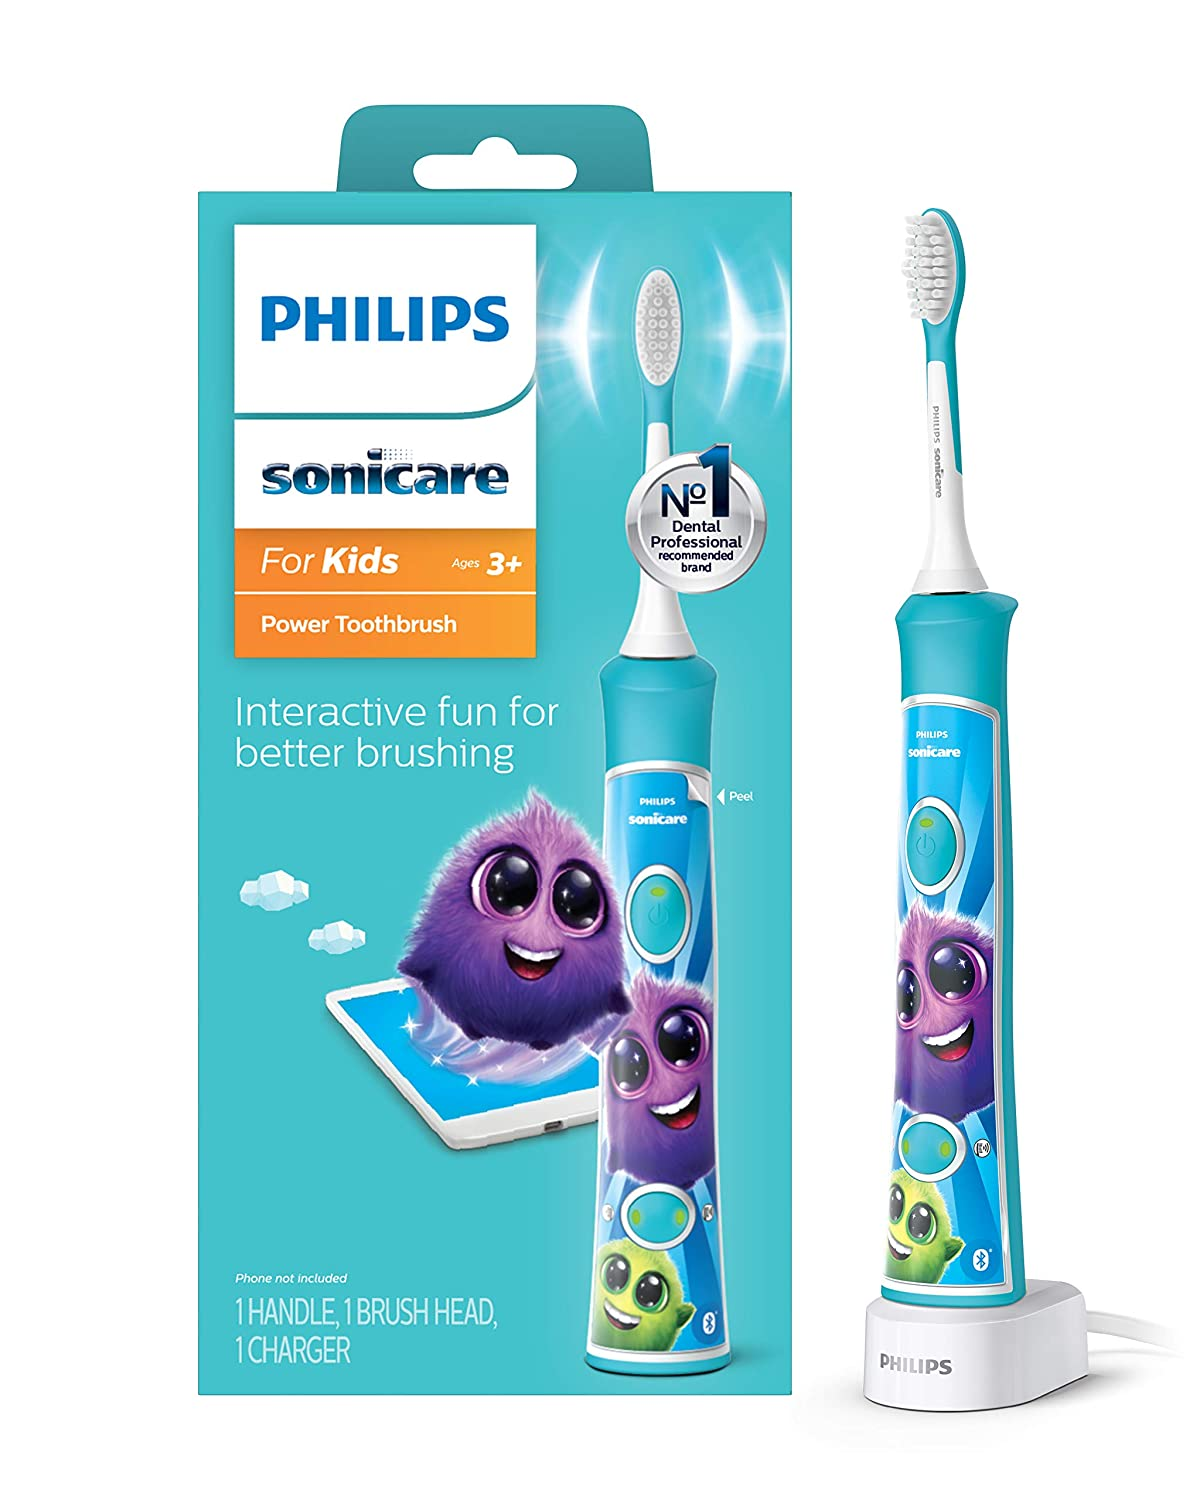 Best Toothbrush for Kids in 2021